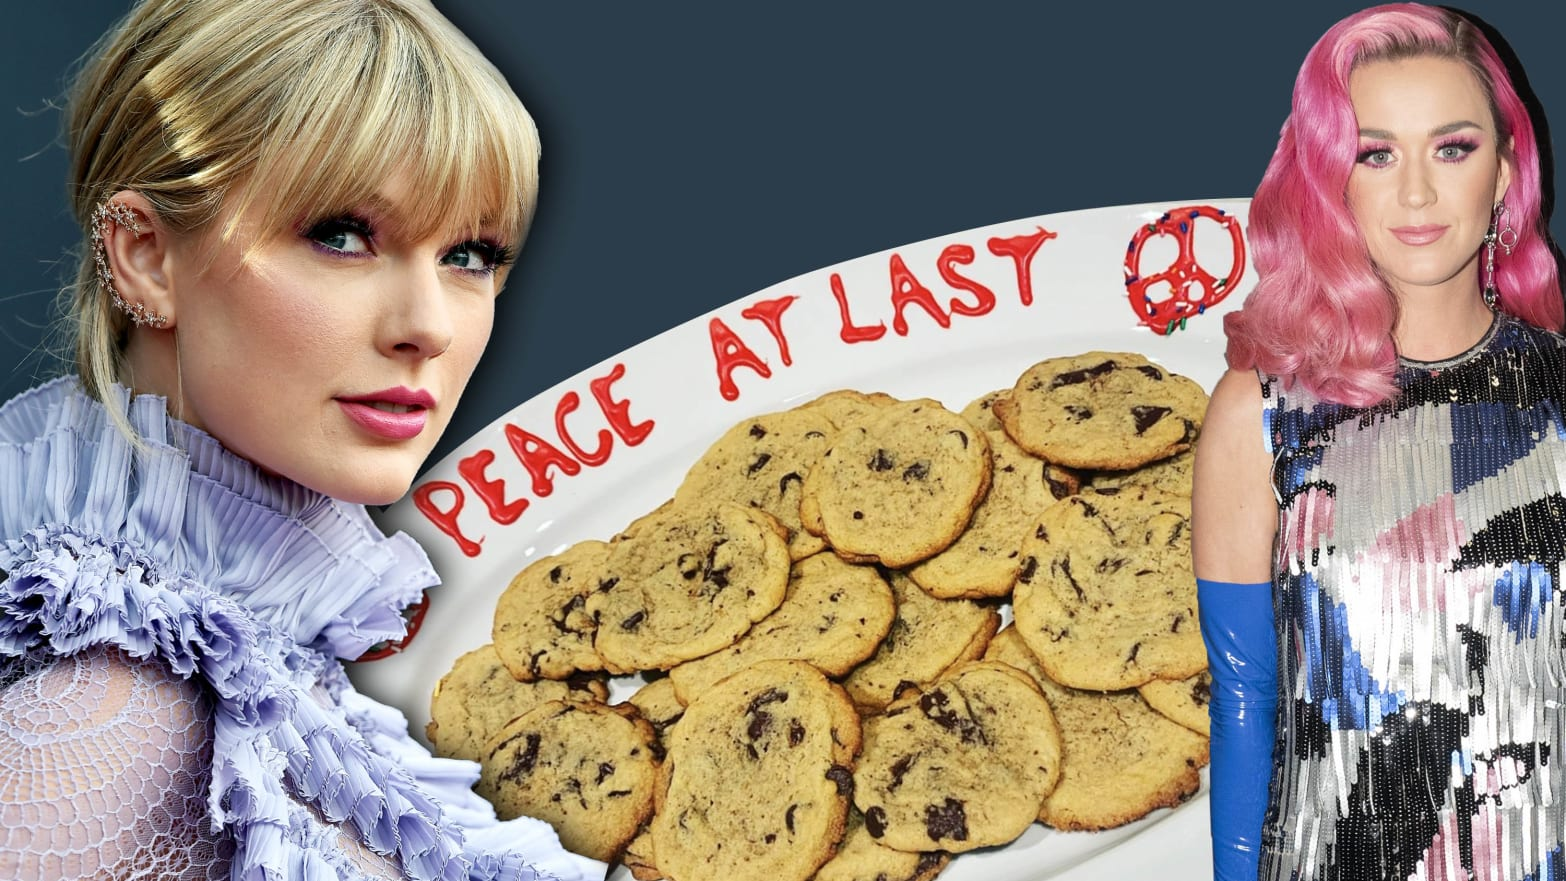 Taylor Swift And Katy Perry End Five Year Feud On Instagram Peace At Last